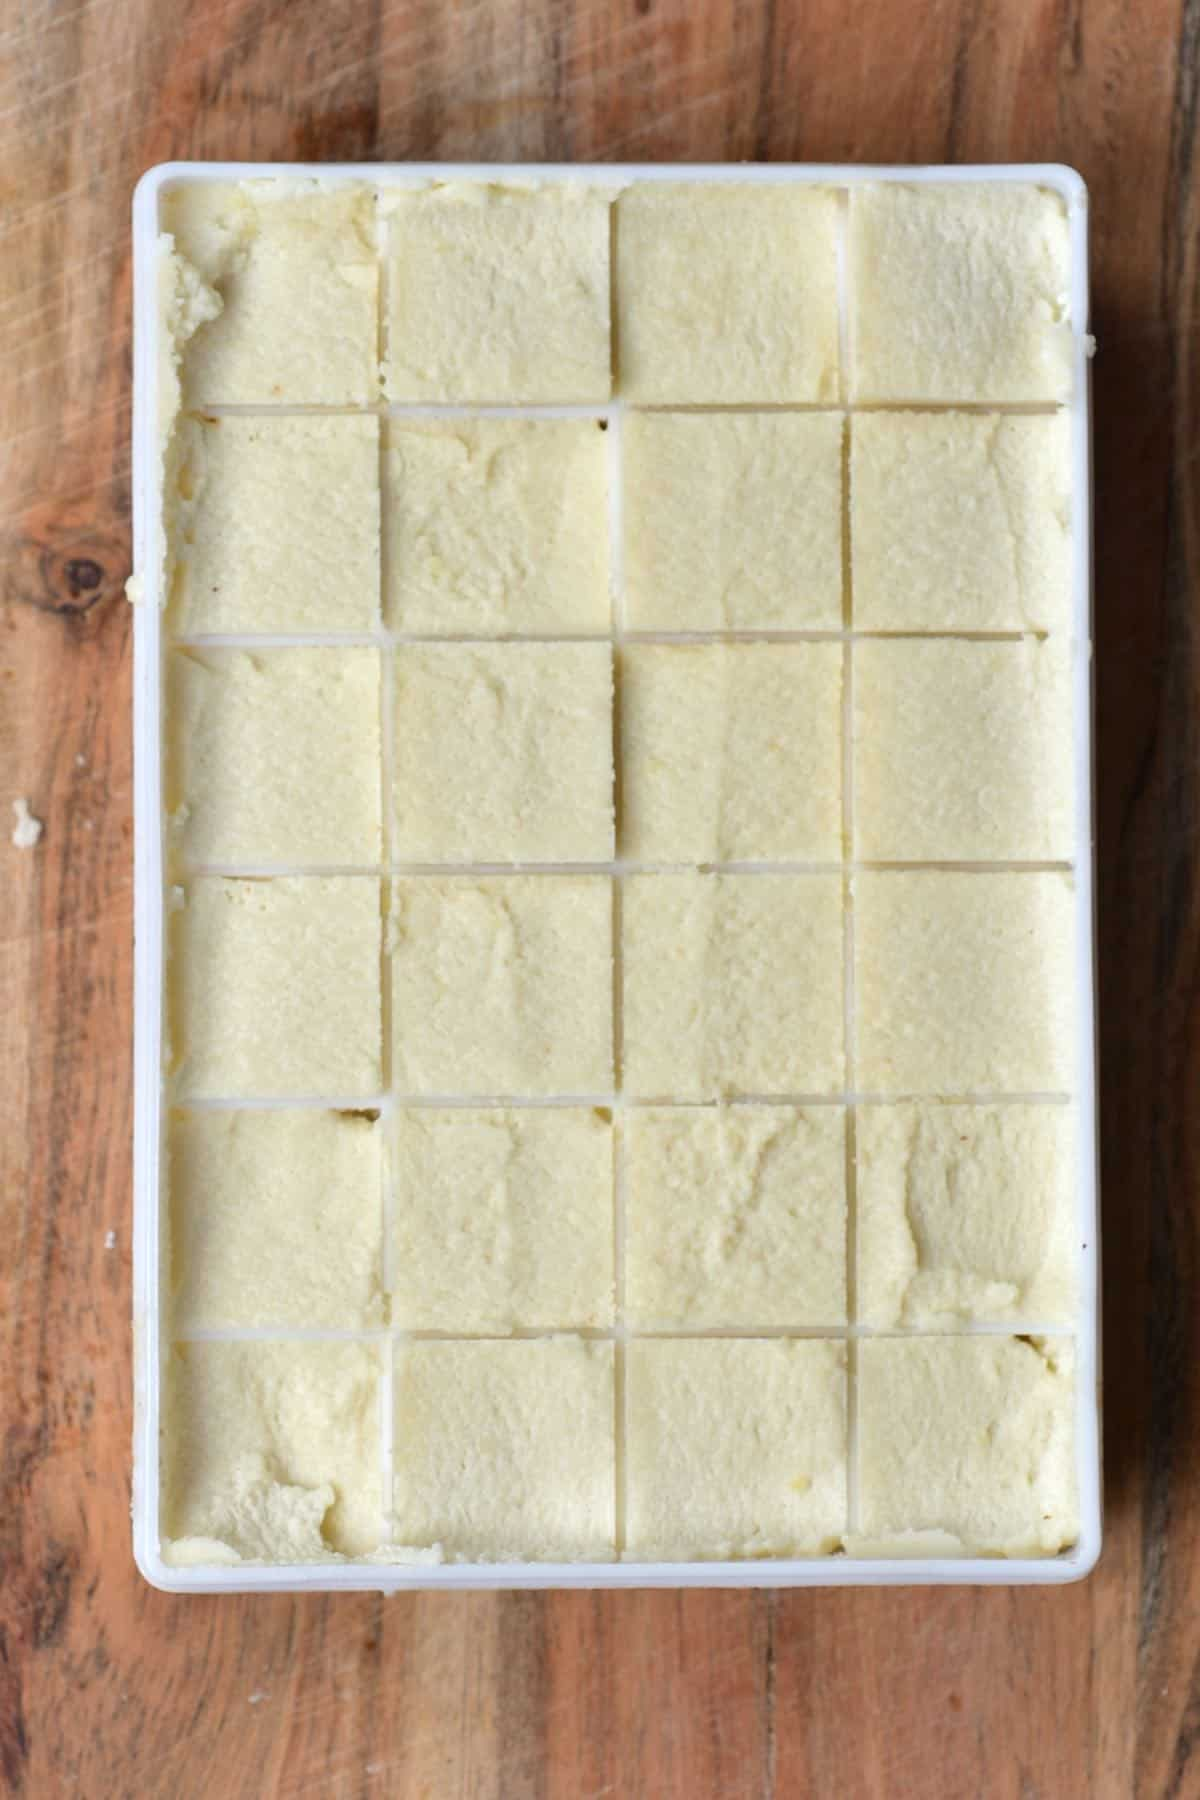 Almond butter in ice cube tray